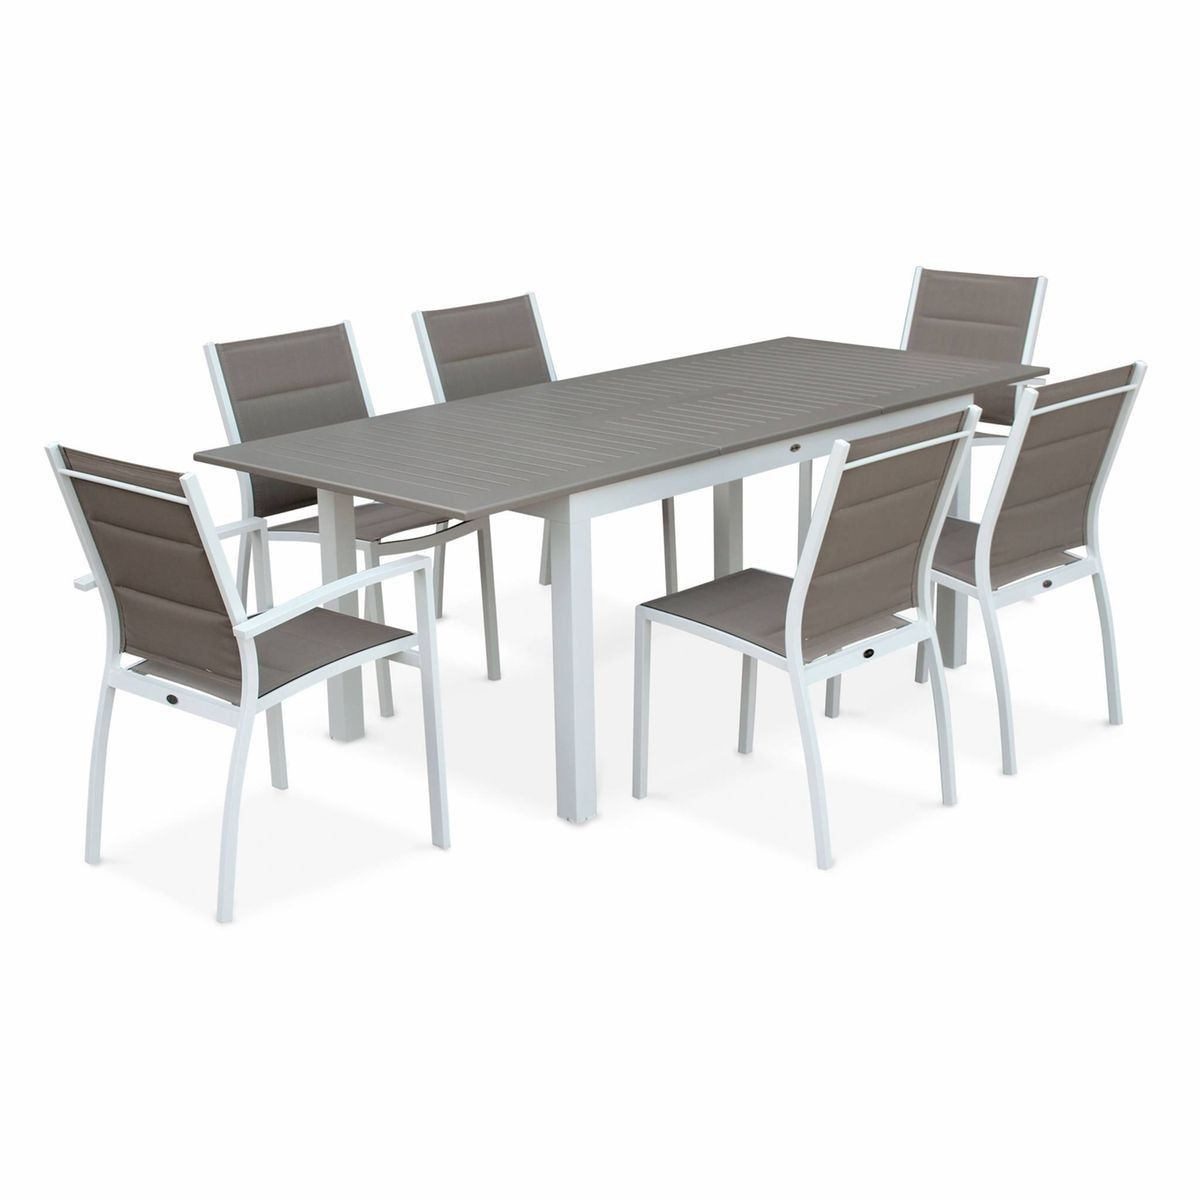 Salon De Jardin Table Extensible - Chicago 210 - Table En ... encequiconcerne Table Jardin Aluminium Avec Rallonge